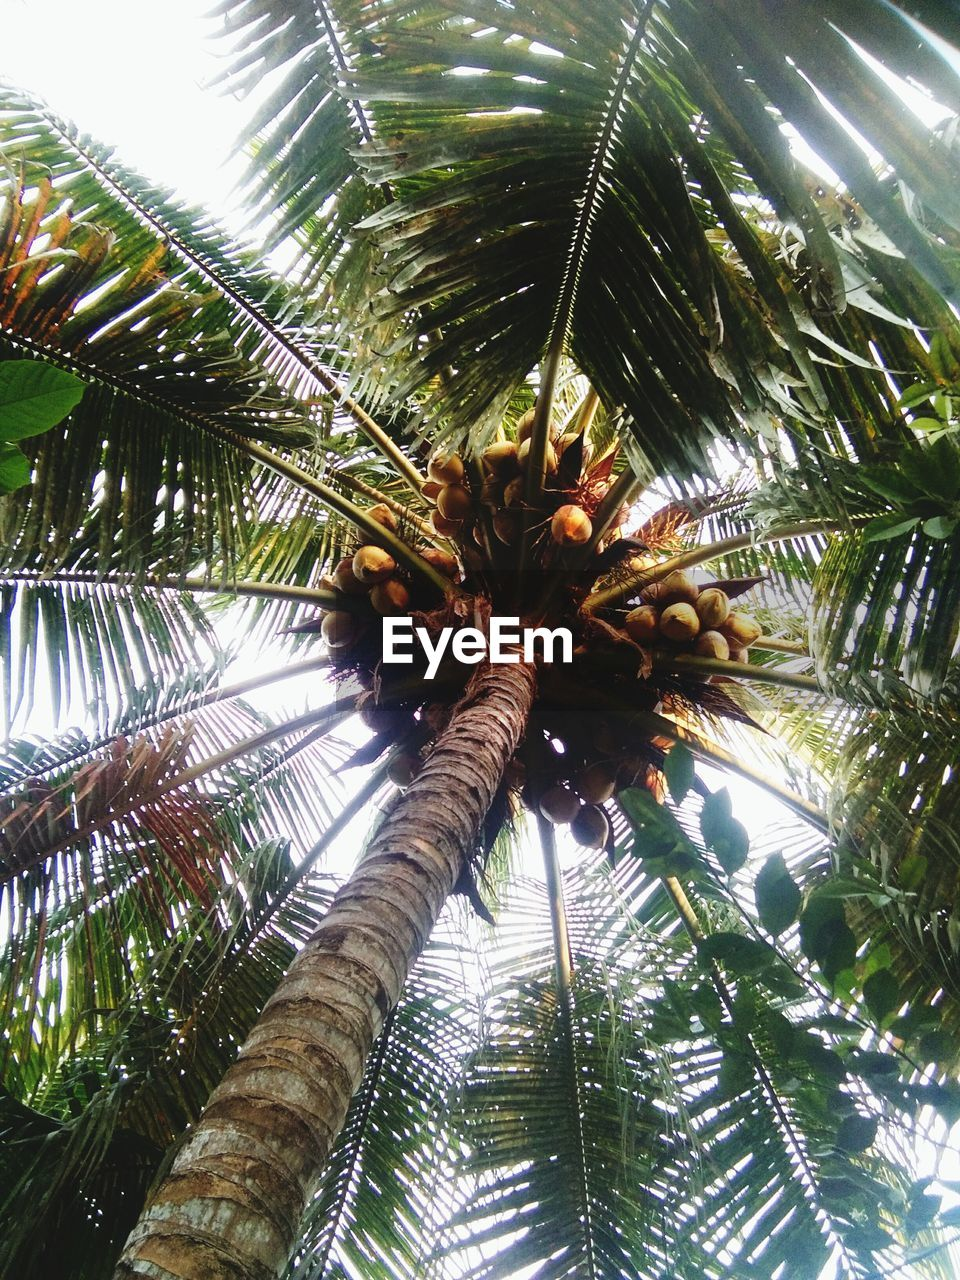 tree, low angle view, palm tree, plant, tropical climate, growth, leaf, nature, day, no people, plant part, beauty in nature, green color, palm leaf, outdoors, tree trunk, tranquility, trunk, sunlight, branch, coconut palm tree, tropical tree, directly below